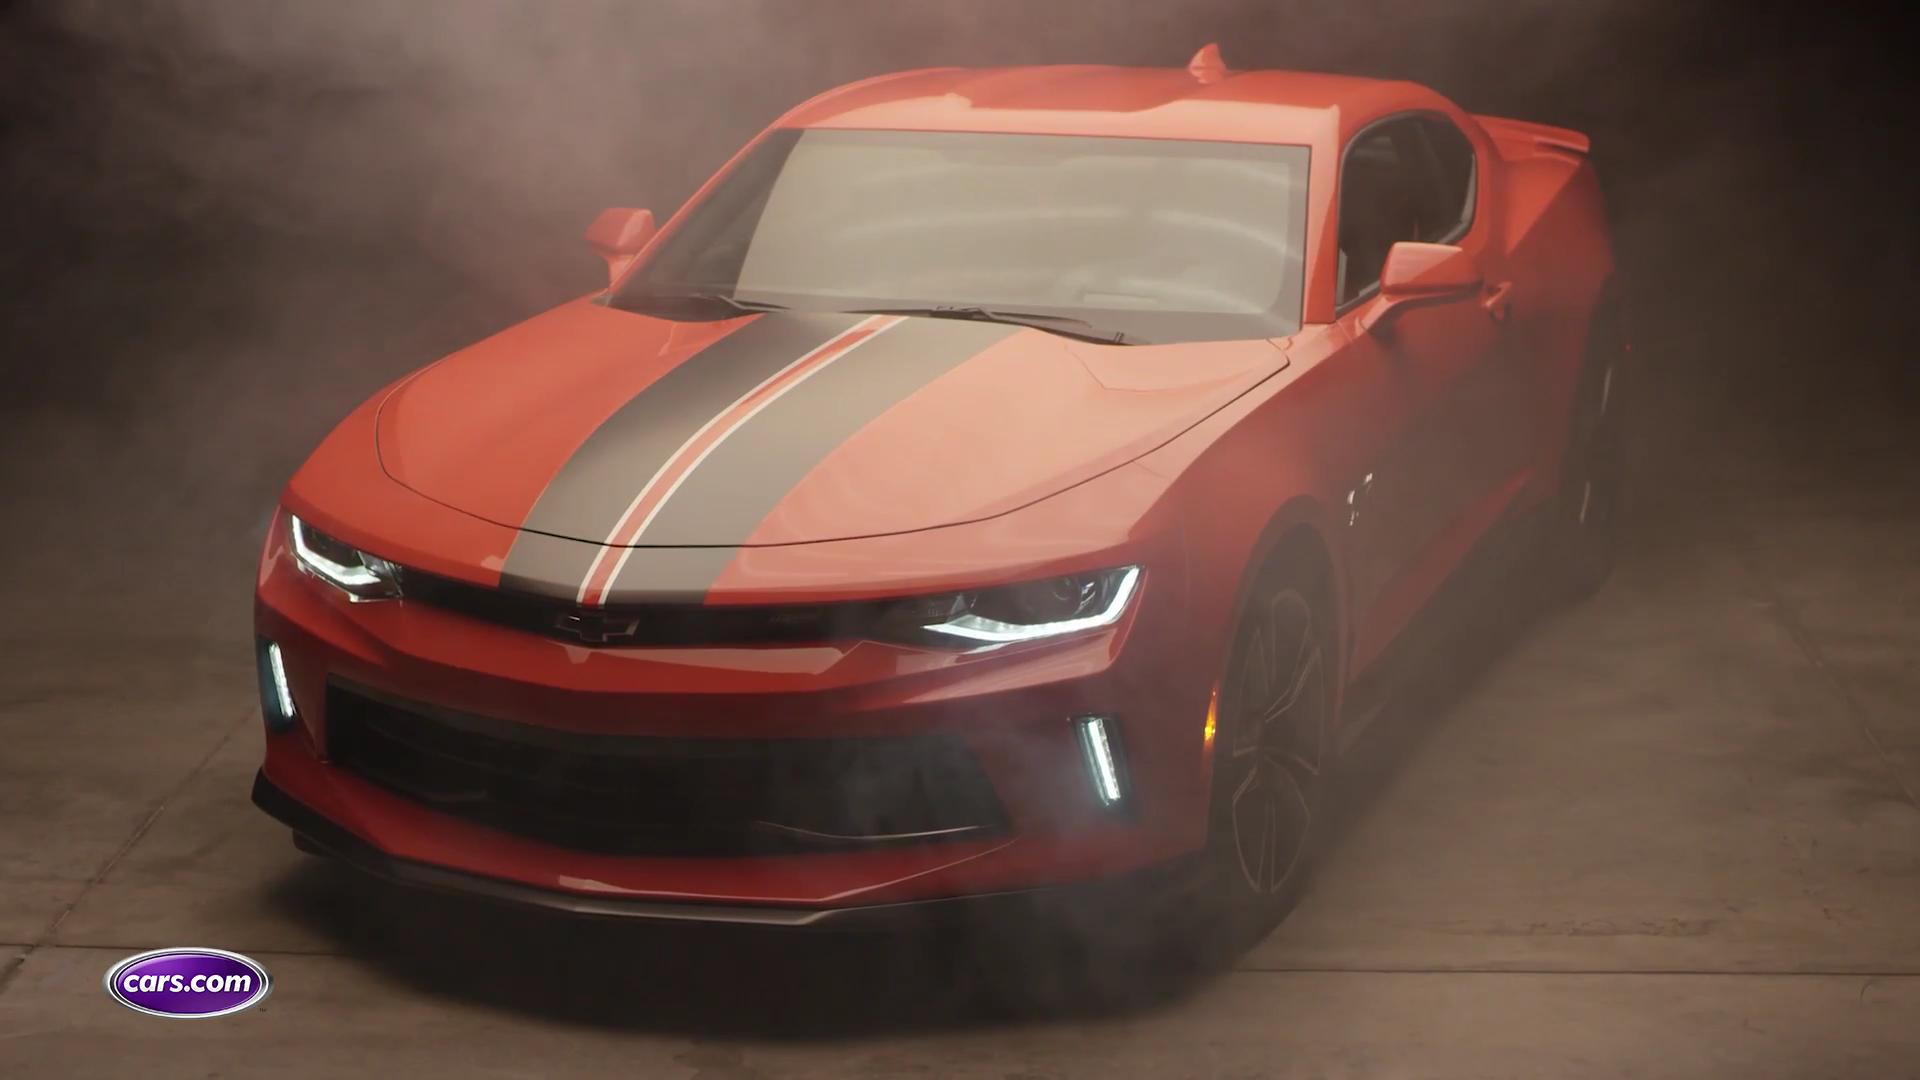 2018 Chevrolet Camaro Hot Wheels 50th Anniversary Edition — Cars.com